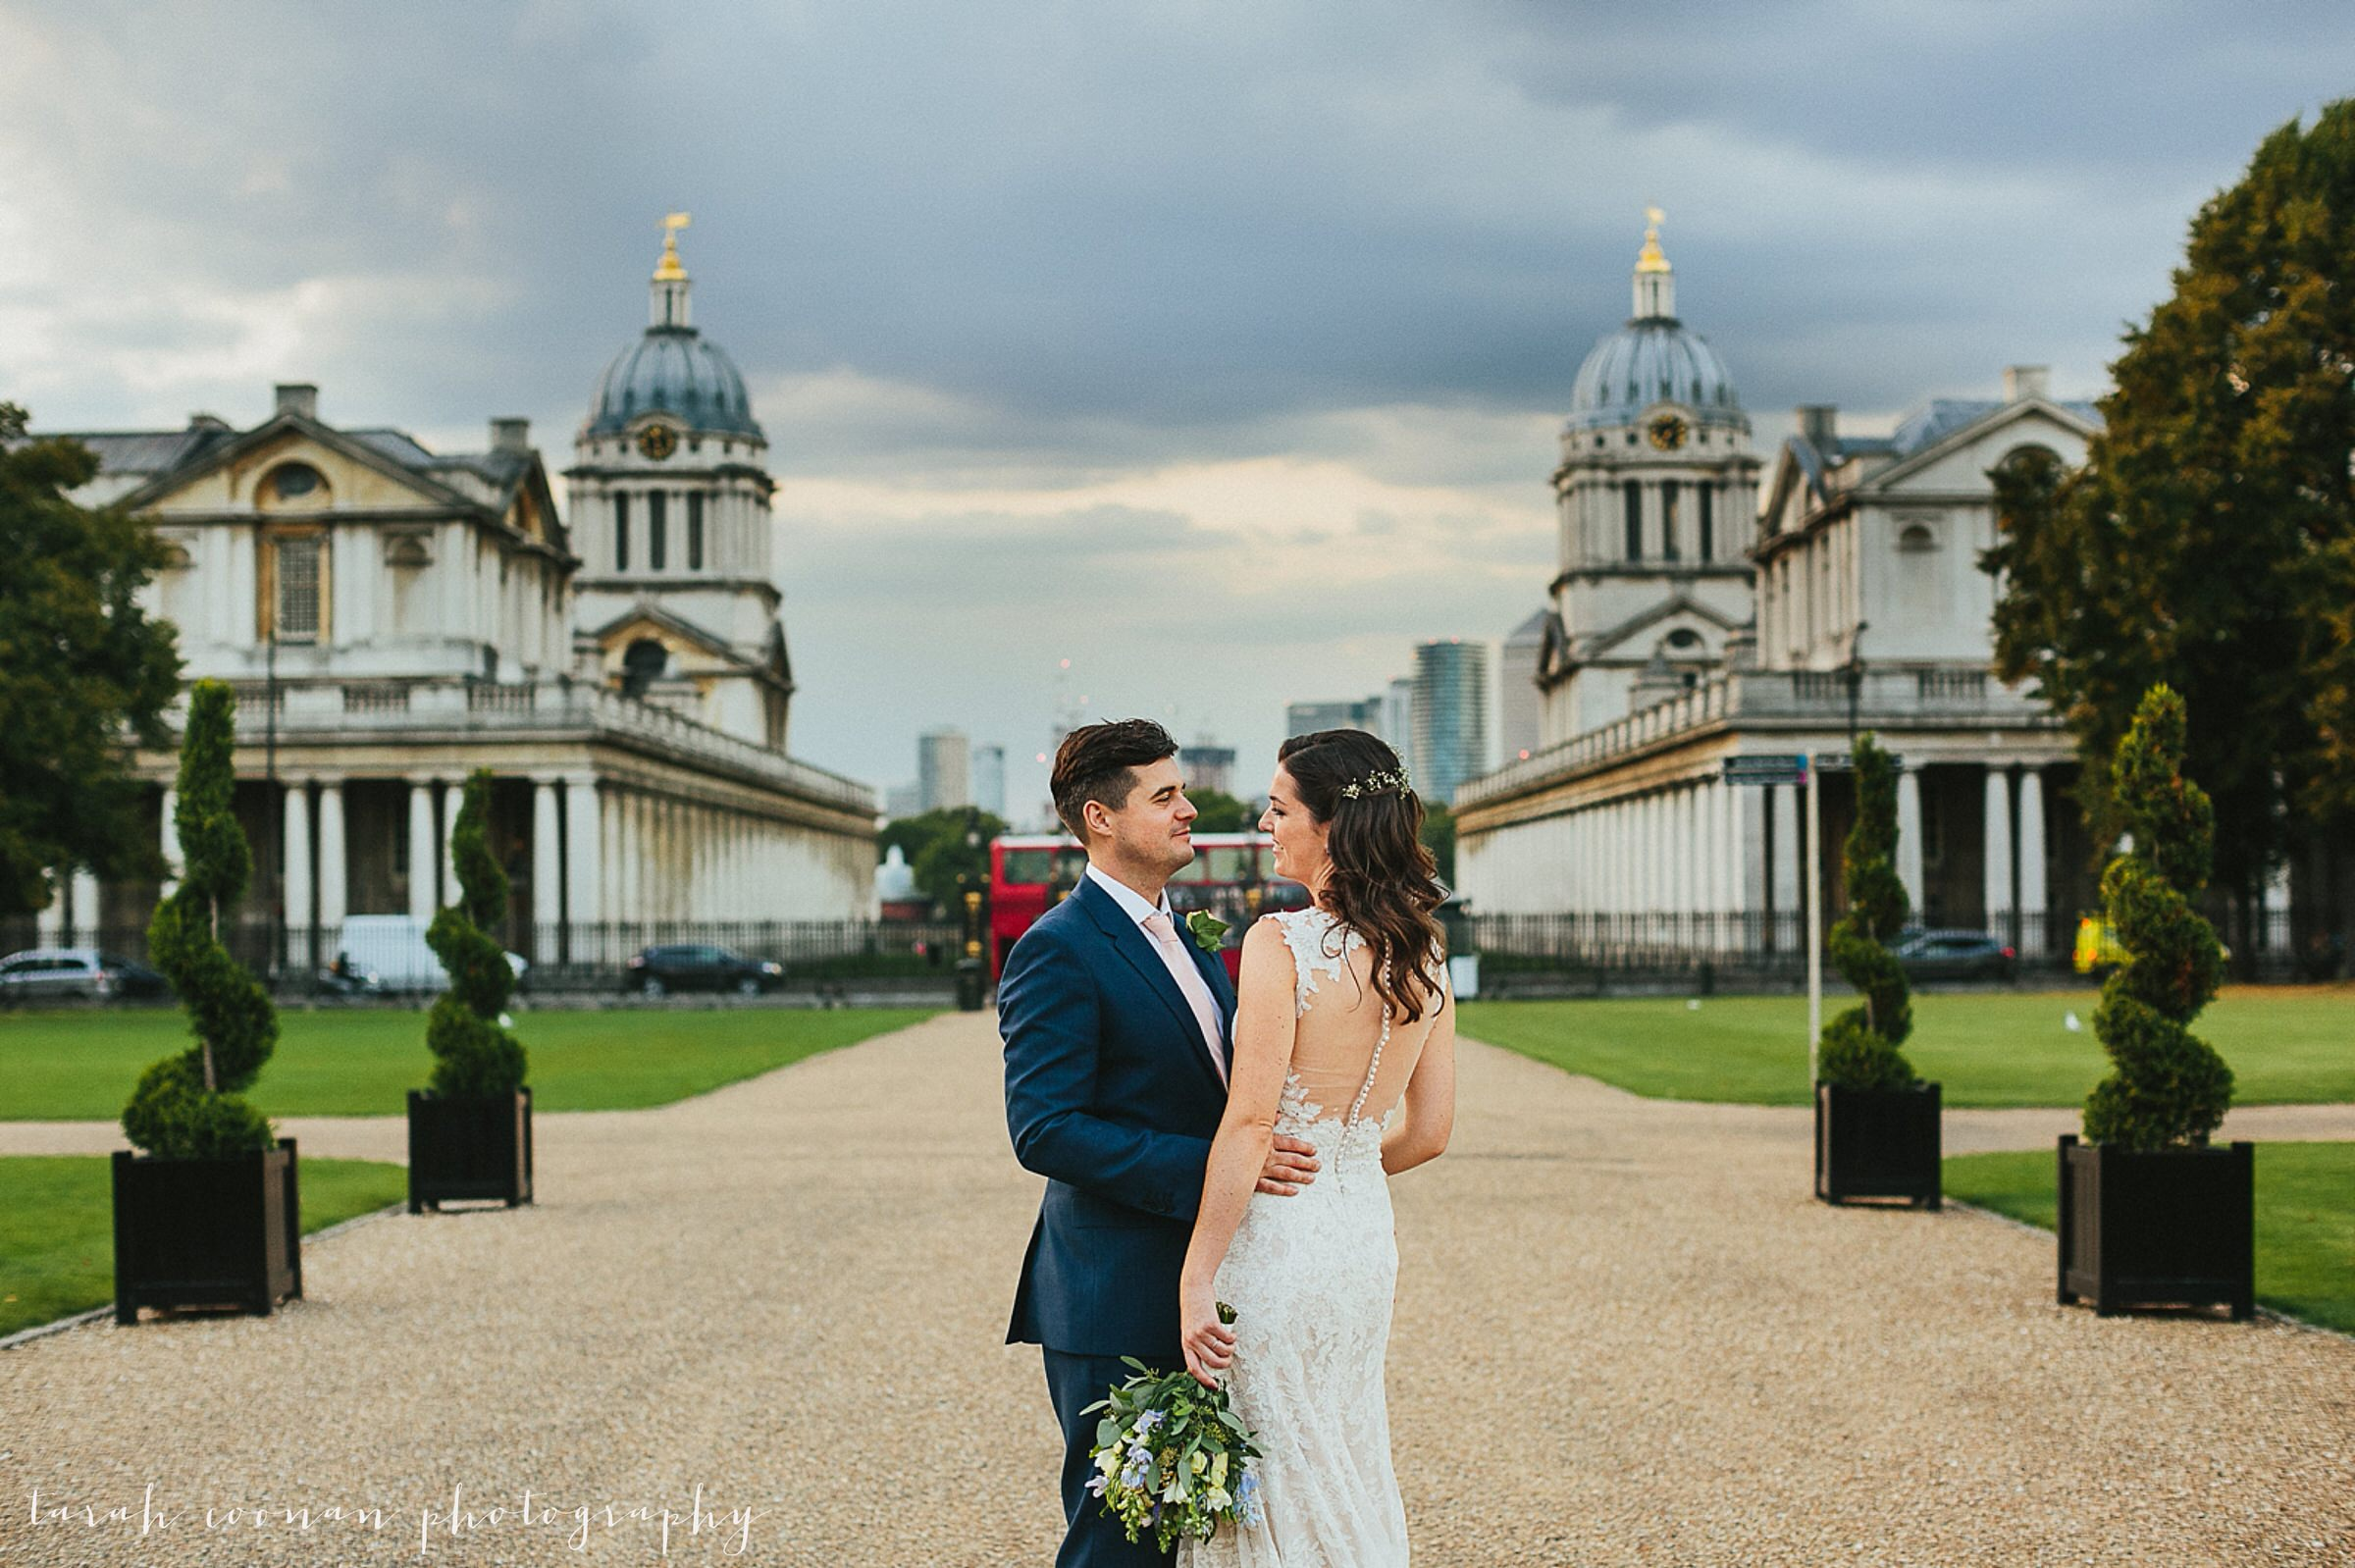 Queens House wedding Greenwich - Rachel & Nick